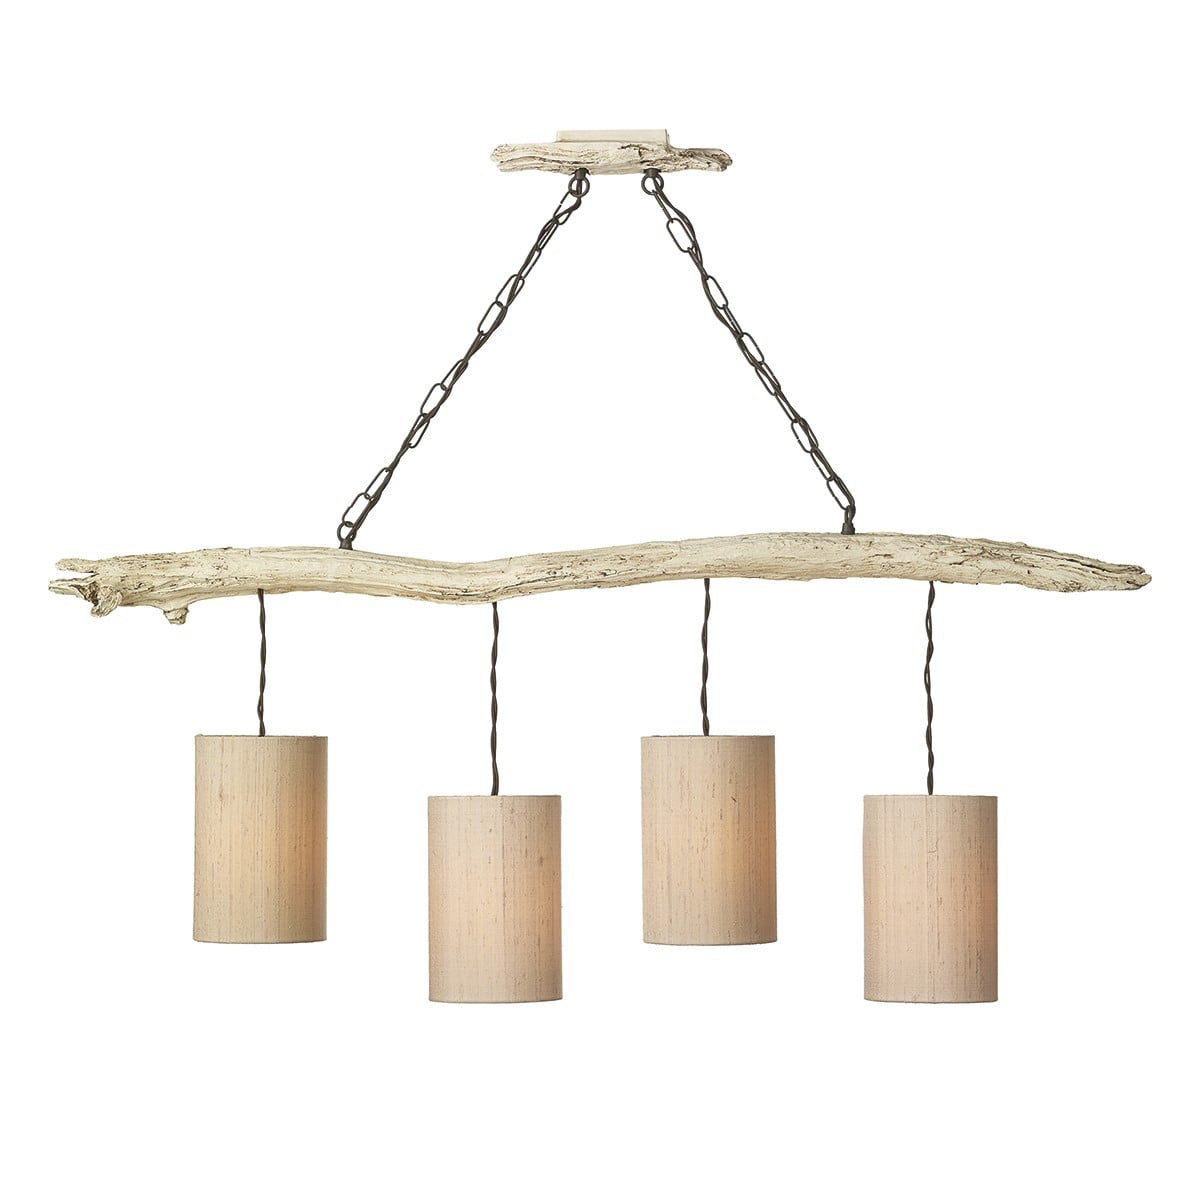 Dar DRI0433 Driftwood 4 Light Bar Pendant complete with Shades